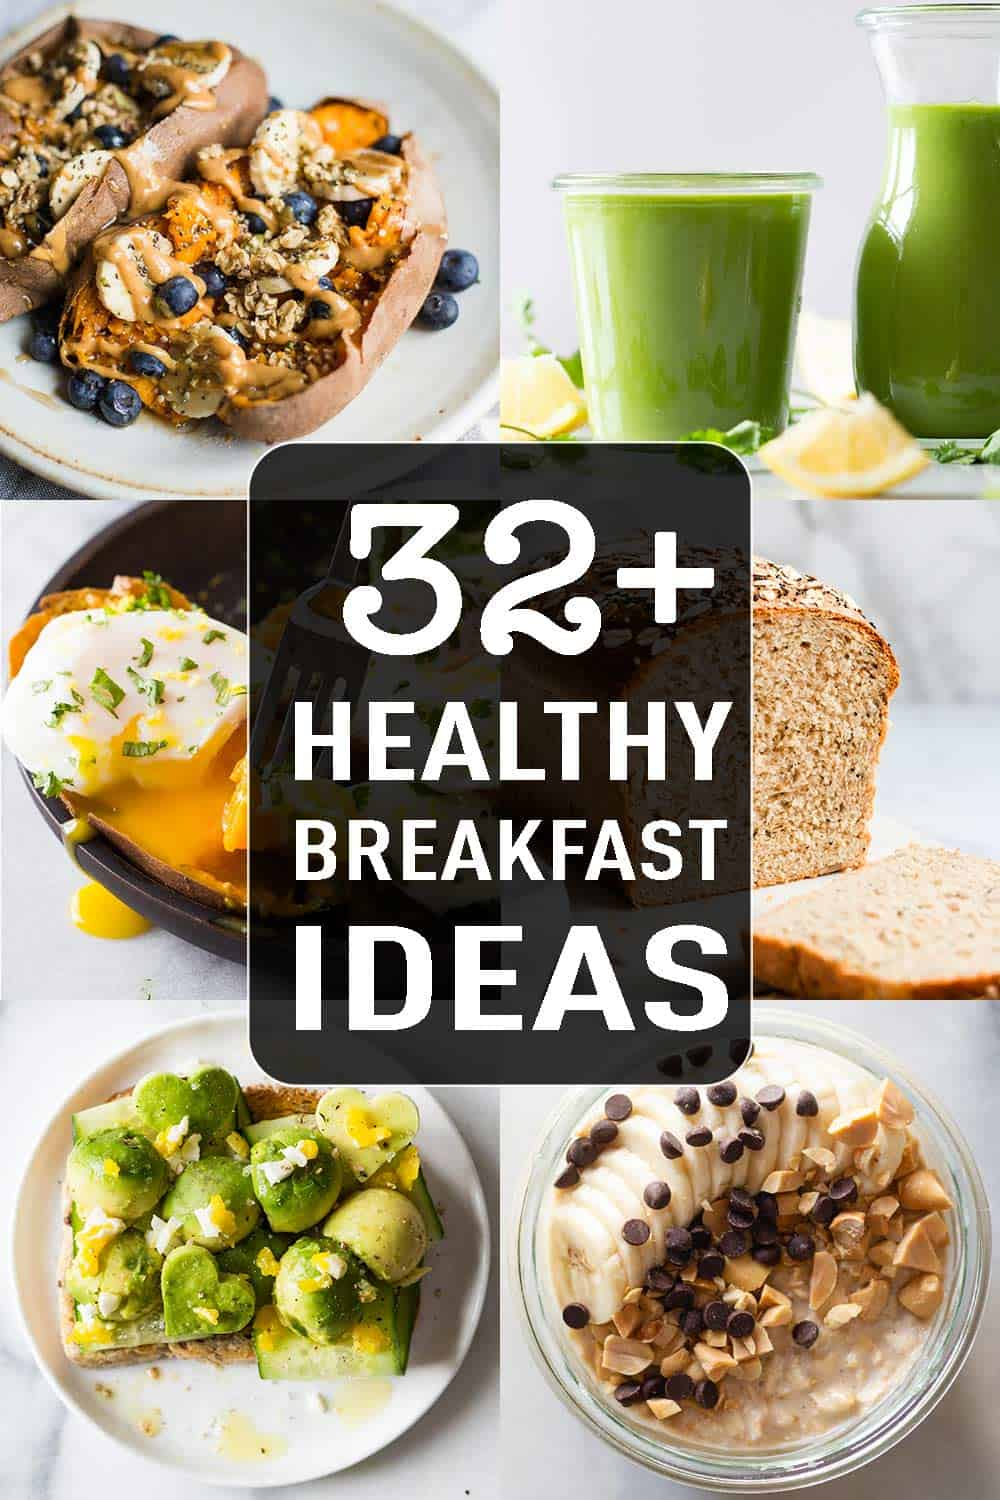 photo collage of 6 breakfast ideas with text overlay